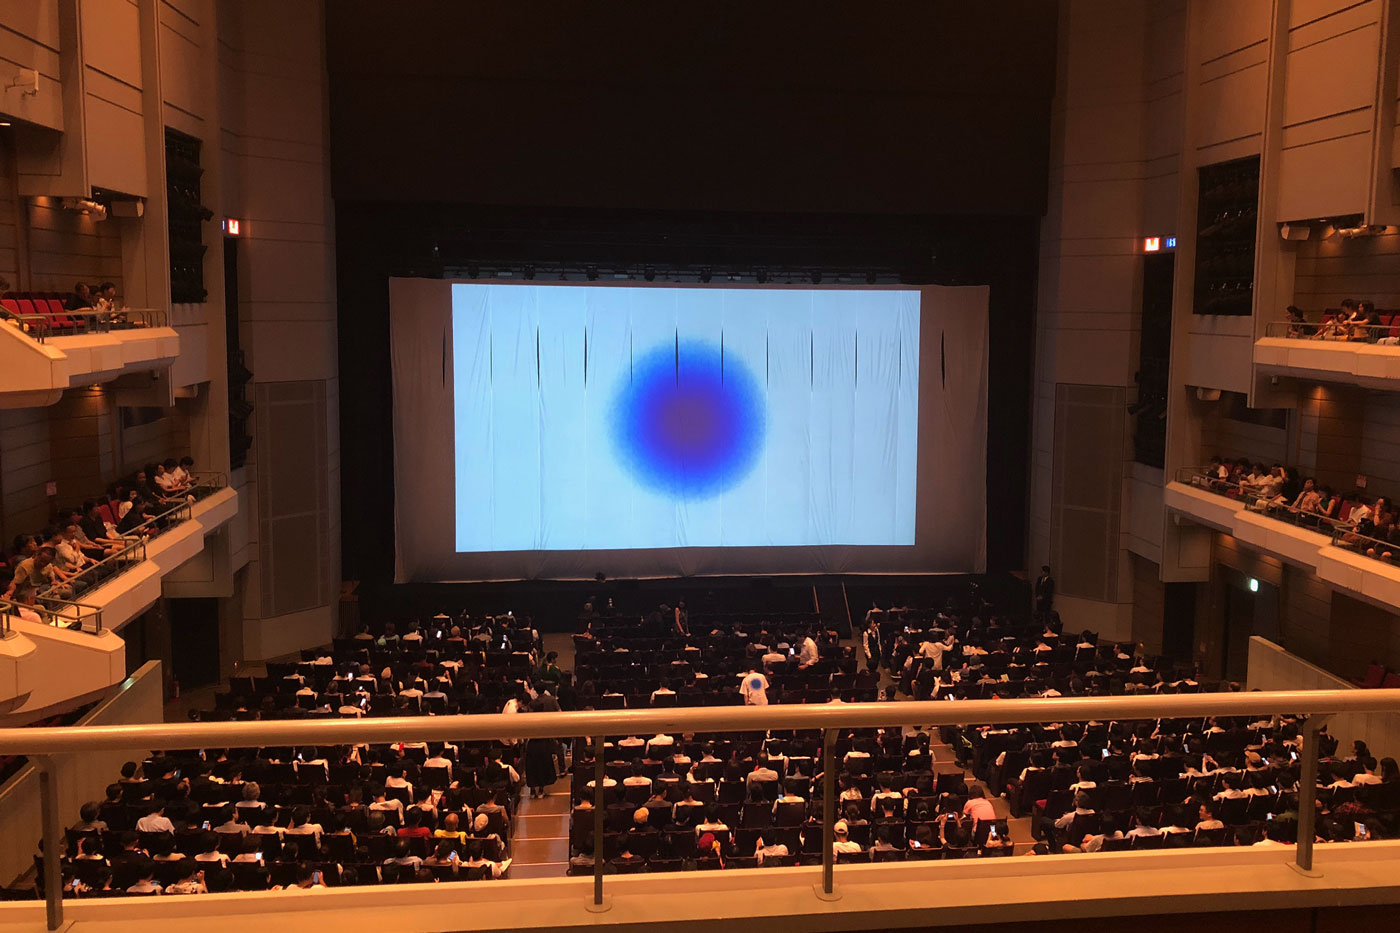 Cornelius Performs Point @ オーチャードホール